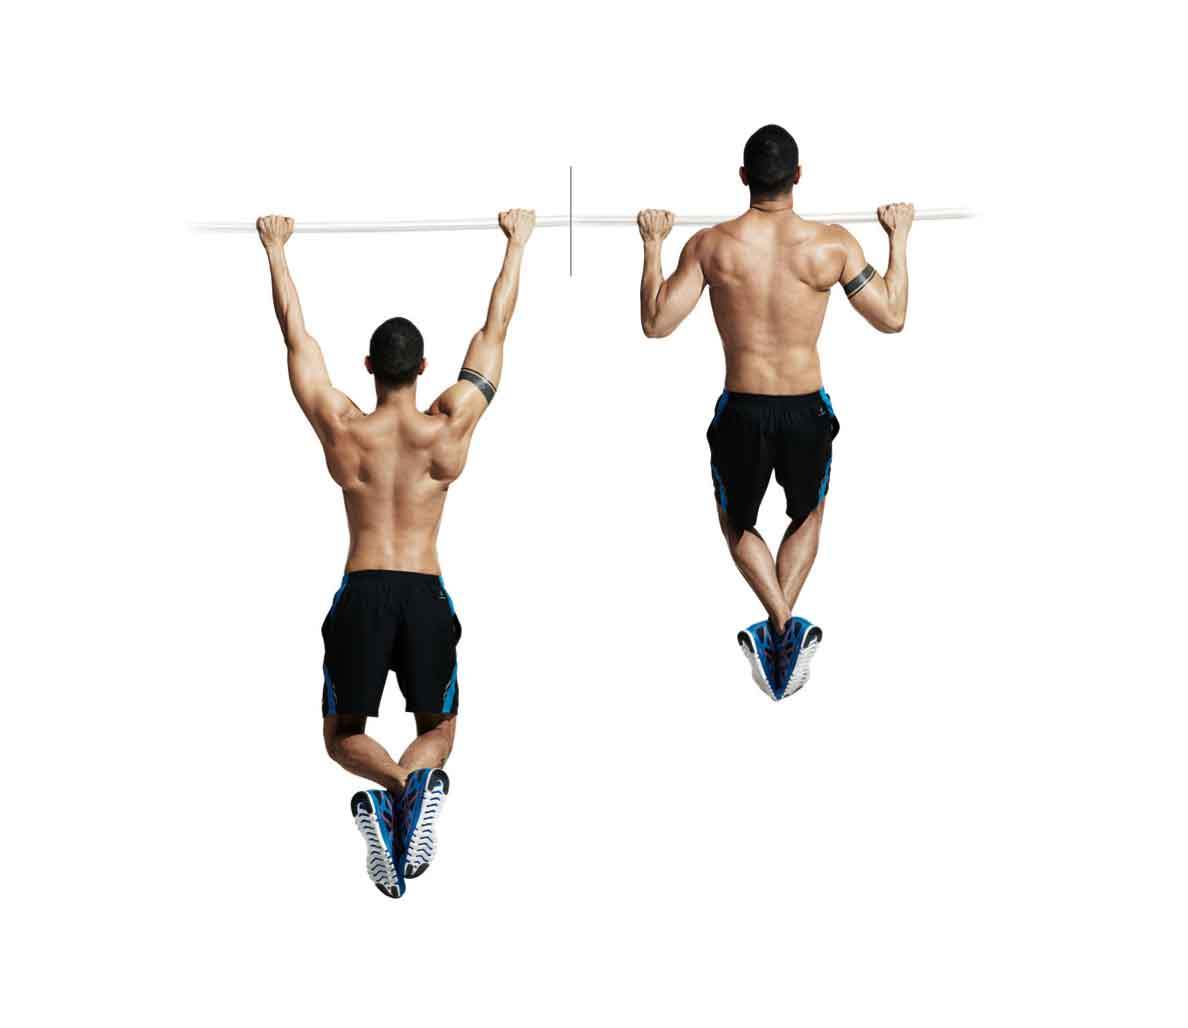 5 Reasons Why You Should Do Pull-ups